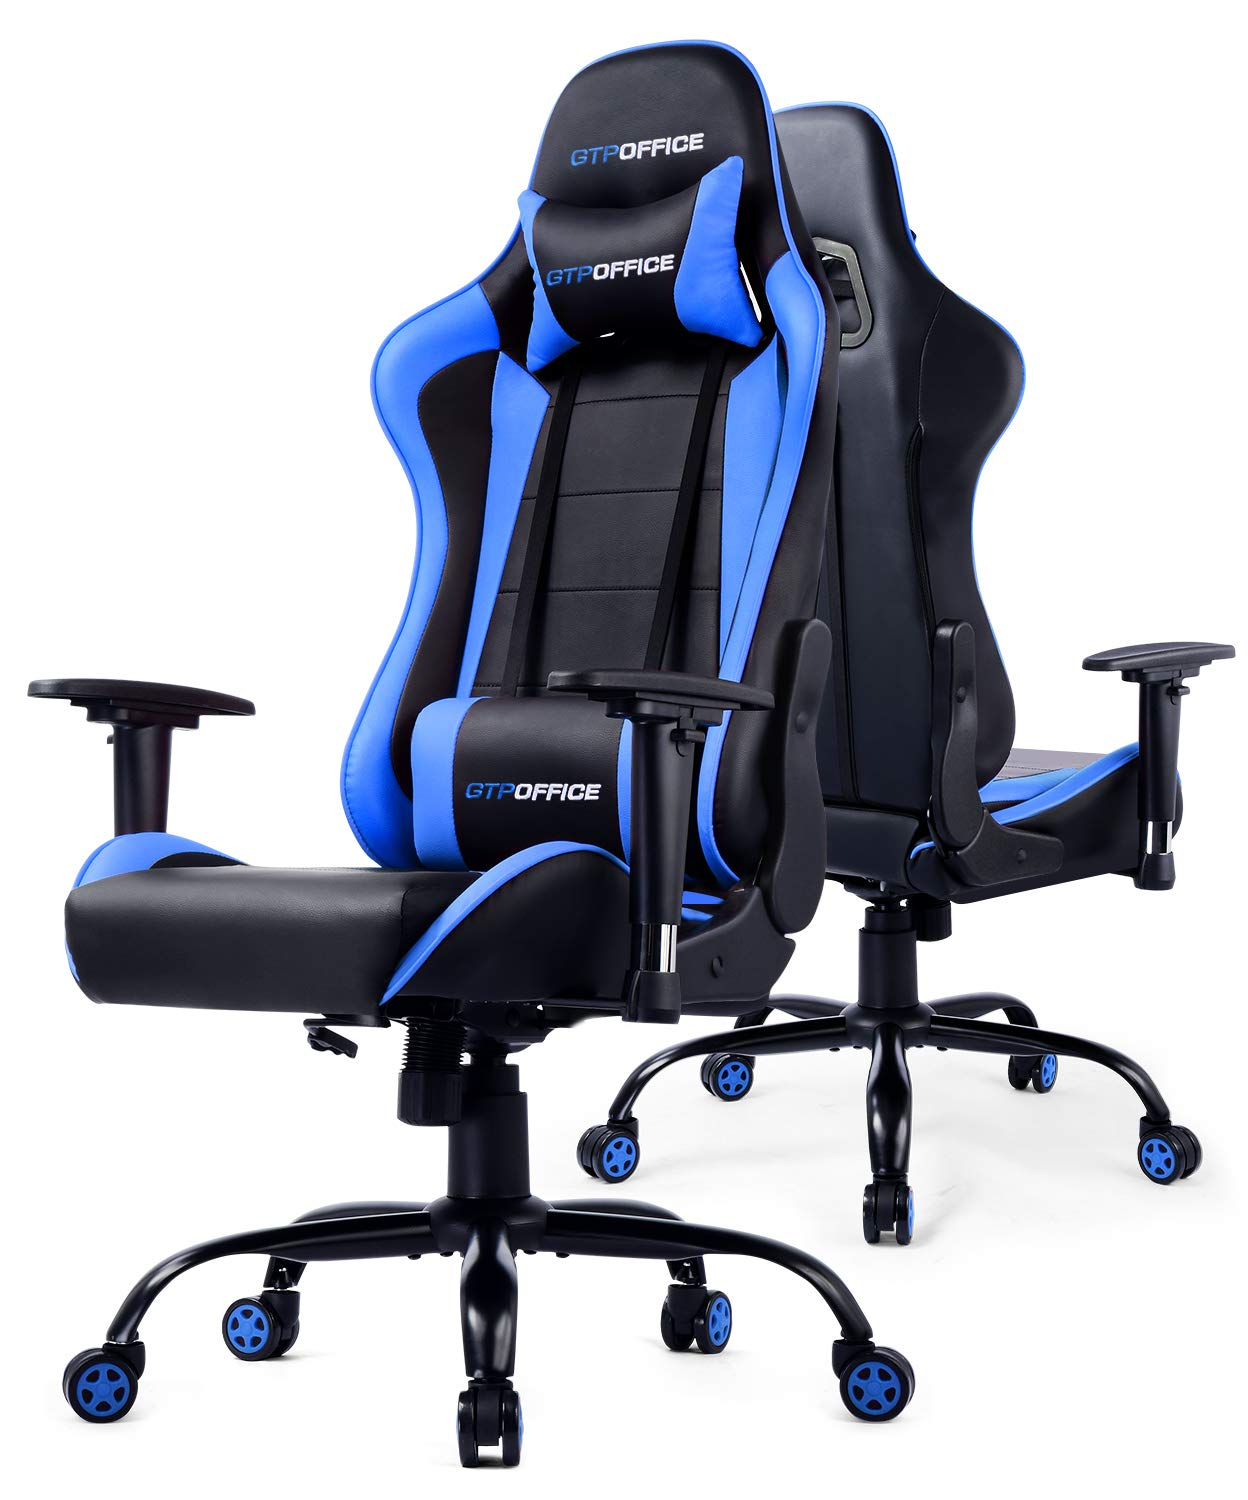 Gaming Chair Office Racing Computer Desk Chairs Ergonomic Executive Manager Work High Back Adjustable Swivel Task Chair Tilt E-Sports Chair Blue